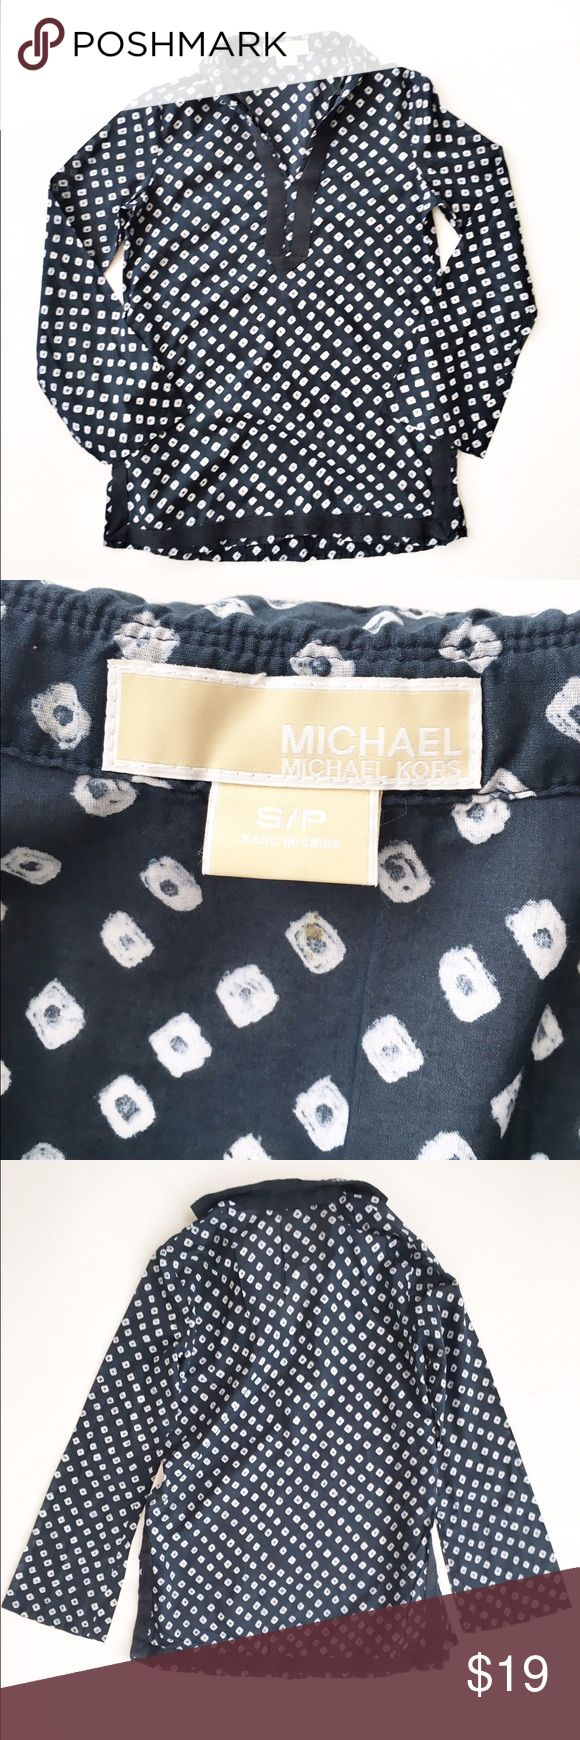 Micheal Kors printed tunic top Diamond print navy and white tunic top from Michael Michael Kors, size small. Semi sheer, features coordinating twill trim. Excellent condition. MICHAEL Michael Kors Tops Tunics